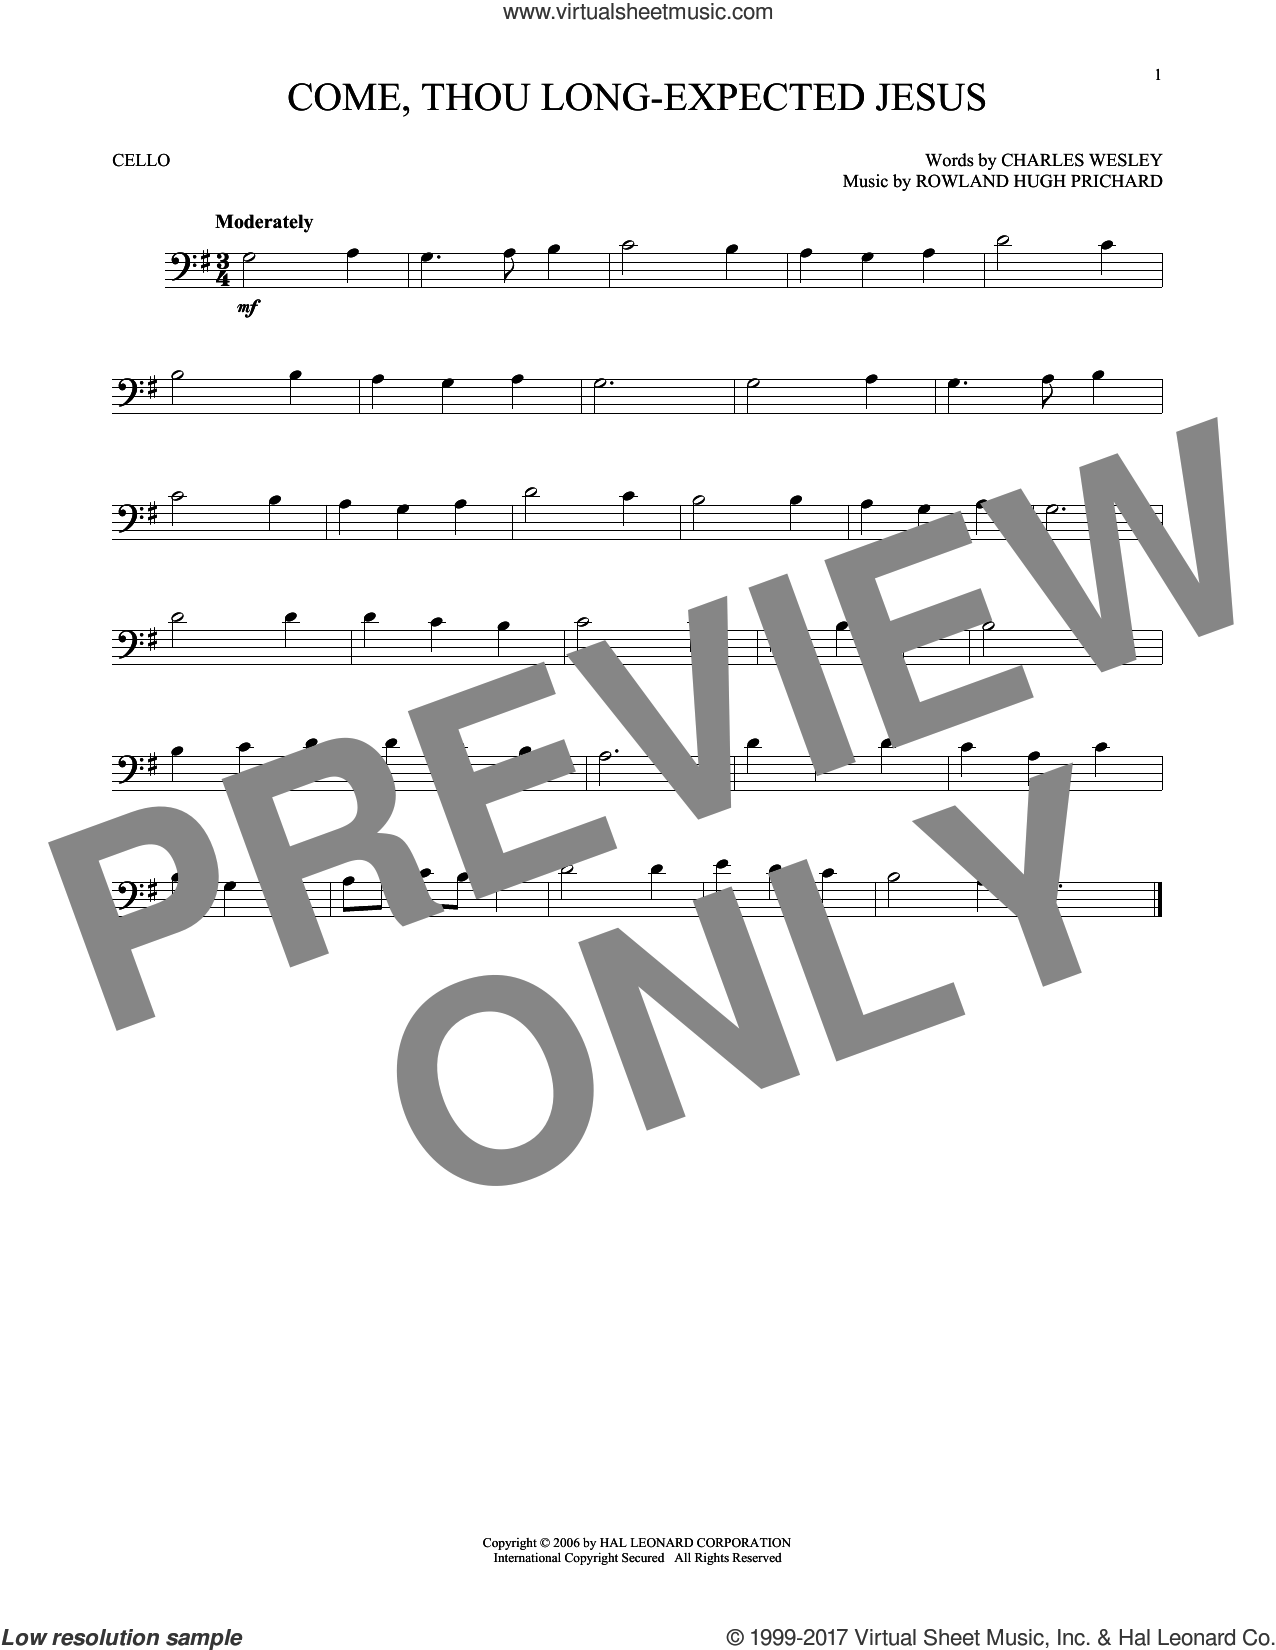 Come, Thou Long-Expected Jesus sheet music for cello solo by Charles Wesley and Rowland Prichard, intermediate. Score Image Preview.